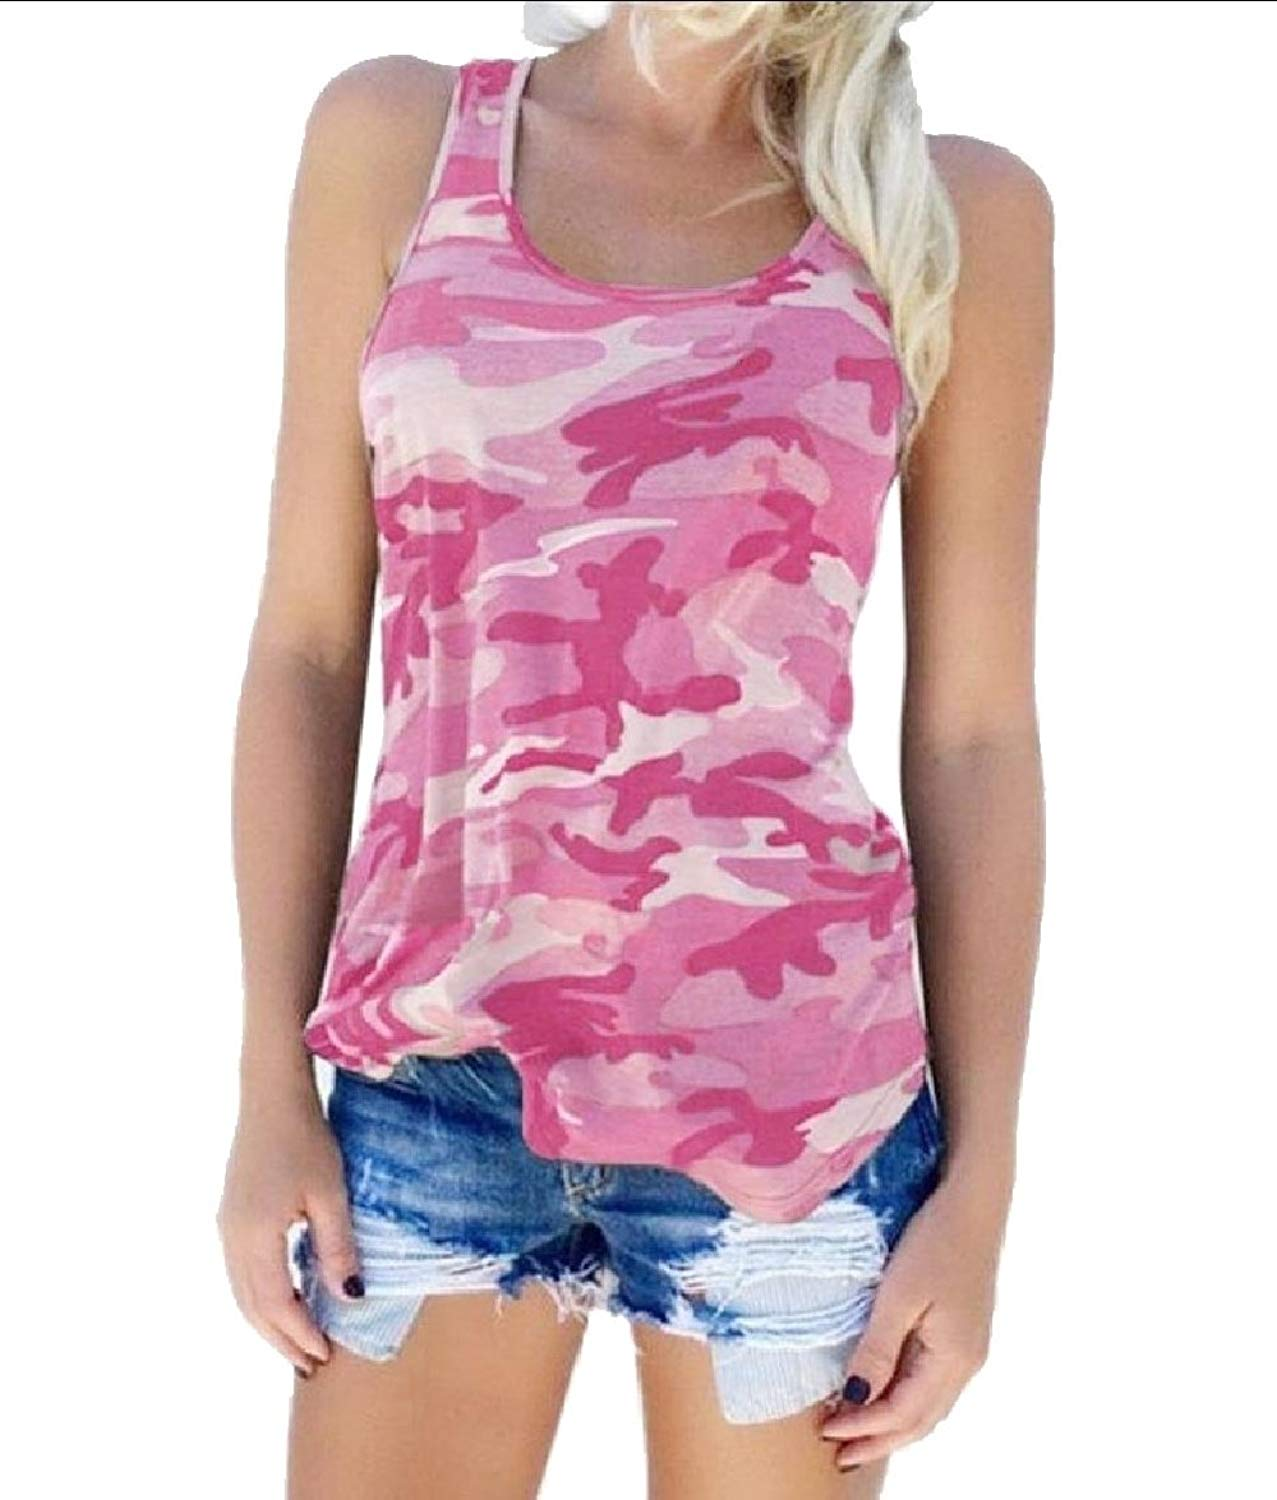 a9608481b0f Get Quotations · Fseason-Women Camo Fitted Cotton Plus-Size Fashionable Tank  Top Shirts